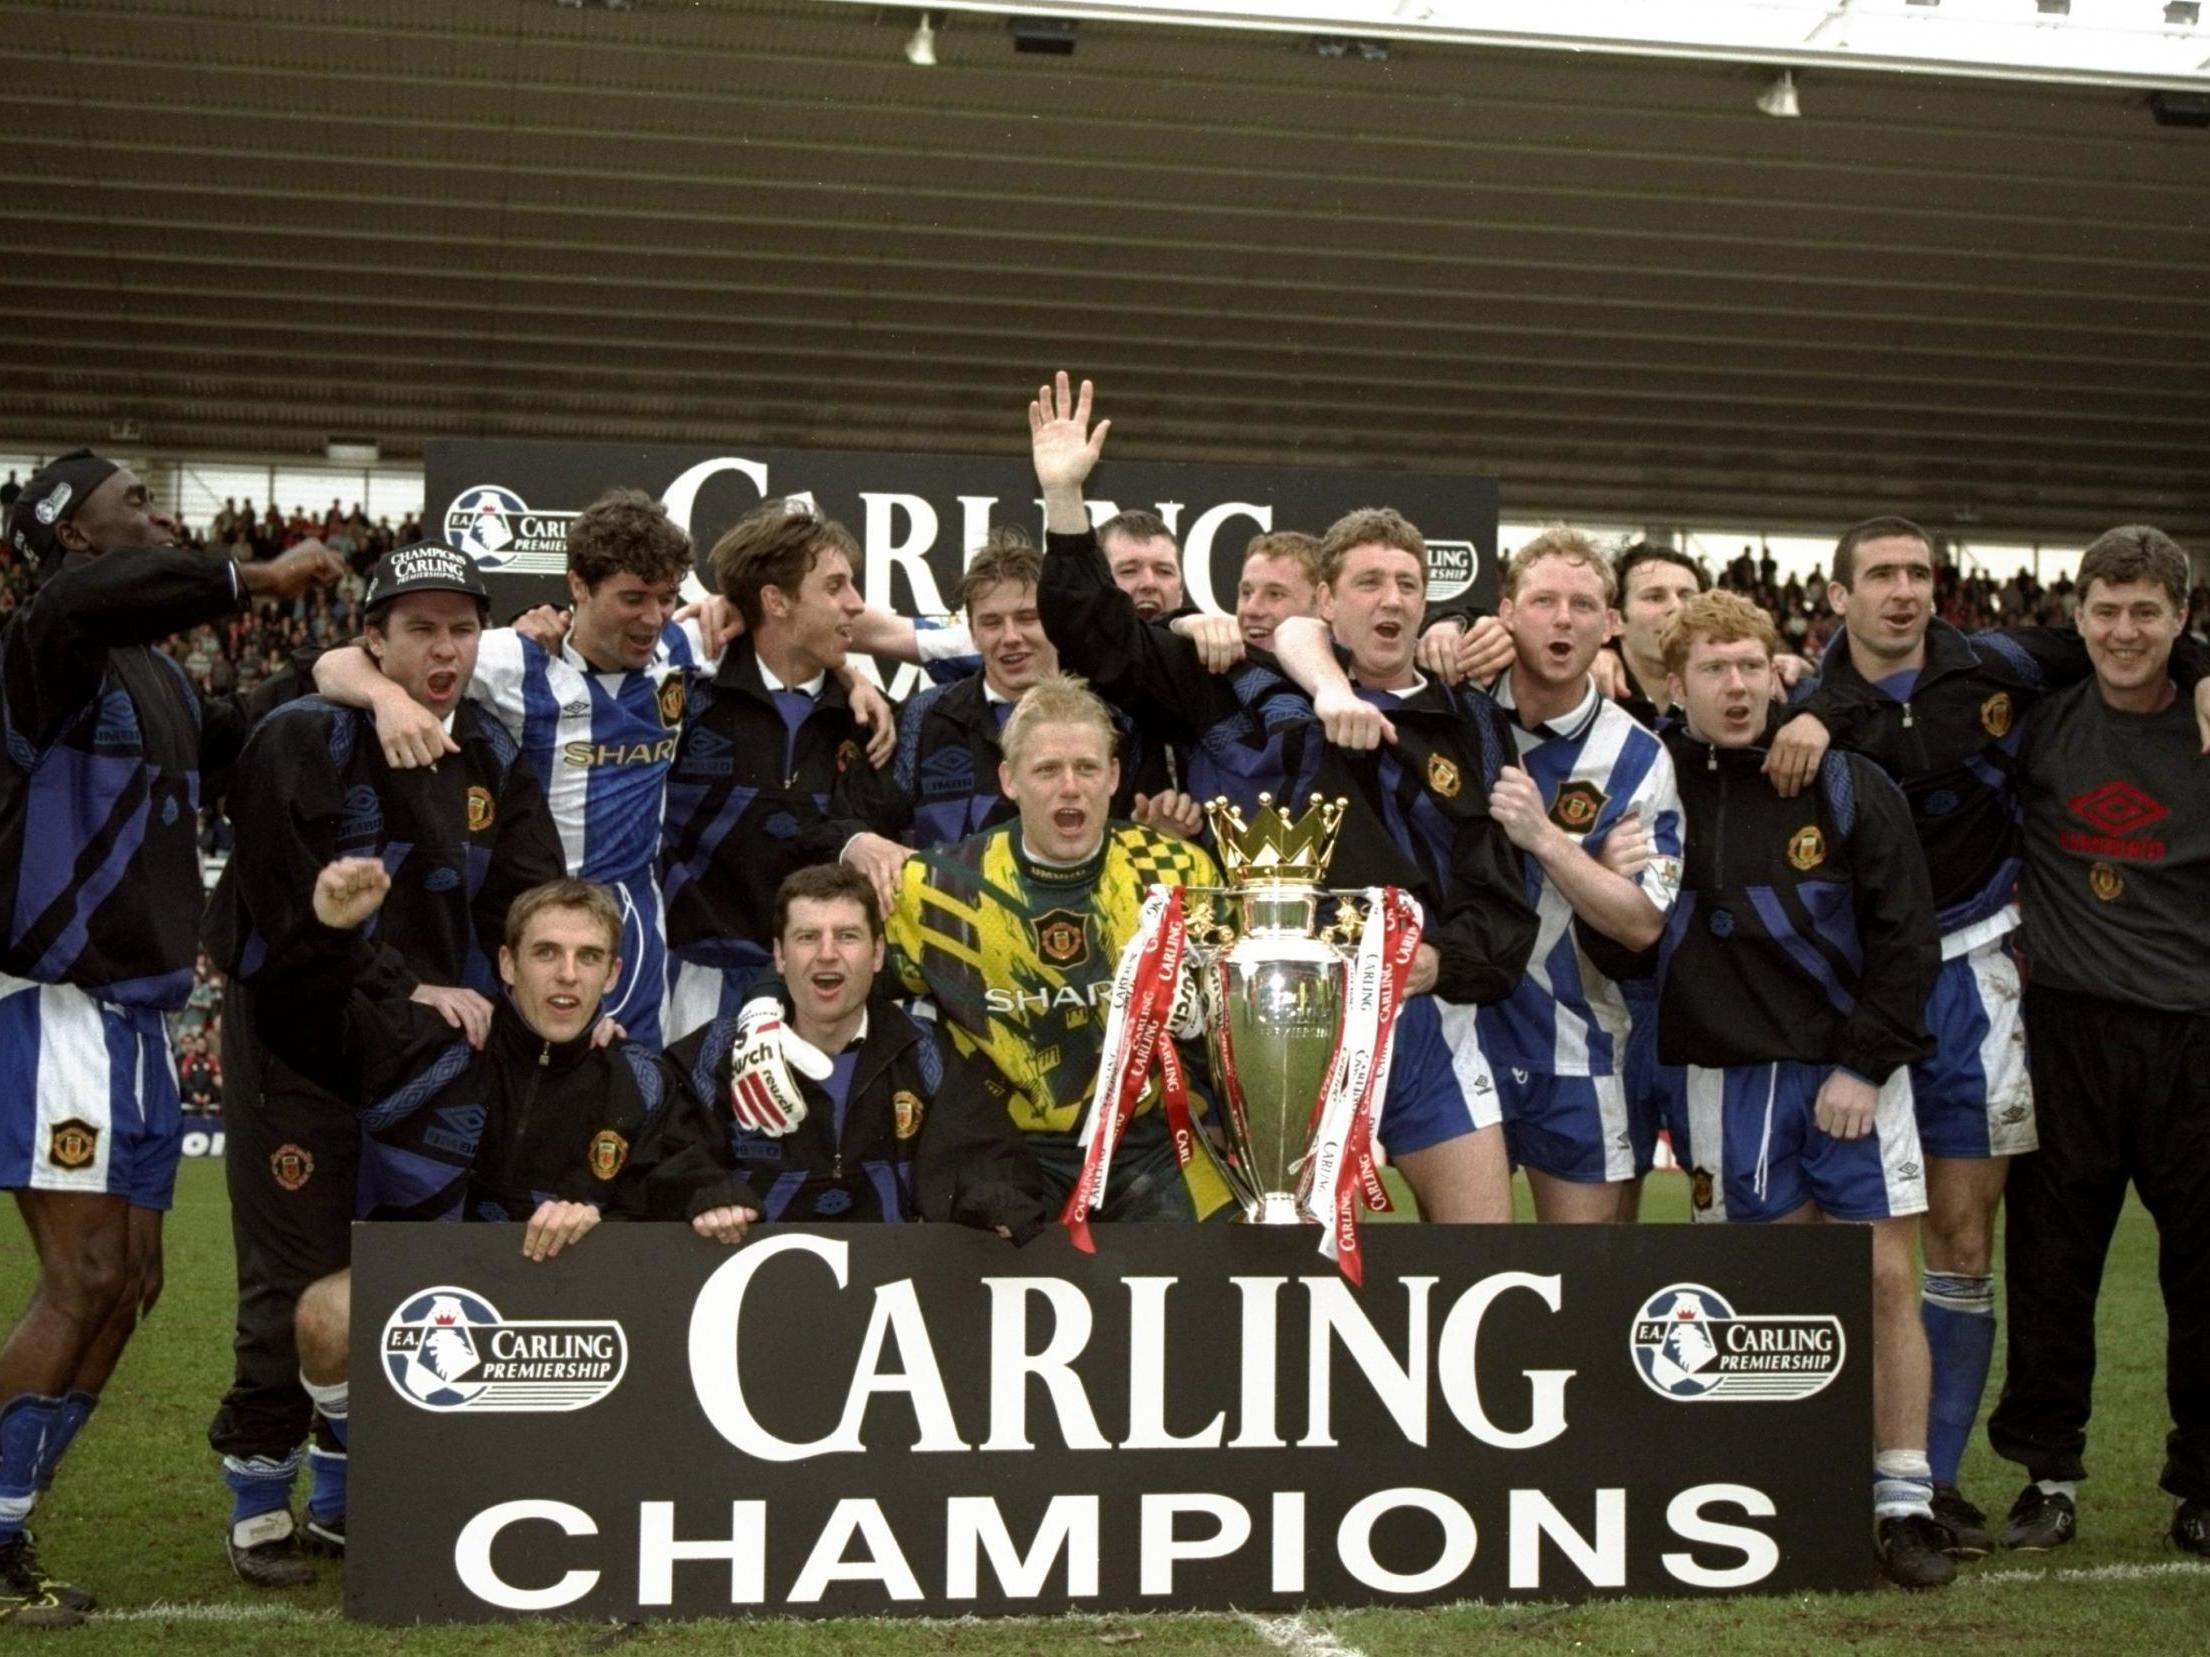 Keegan, Ferguson, Cantona and a collapse: The inside story of the 1995/96 title race